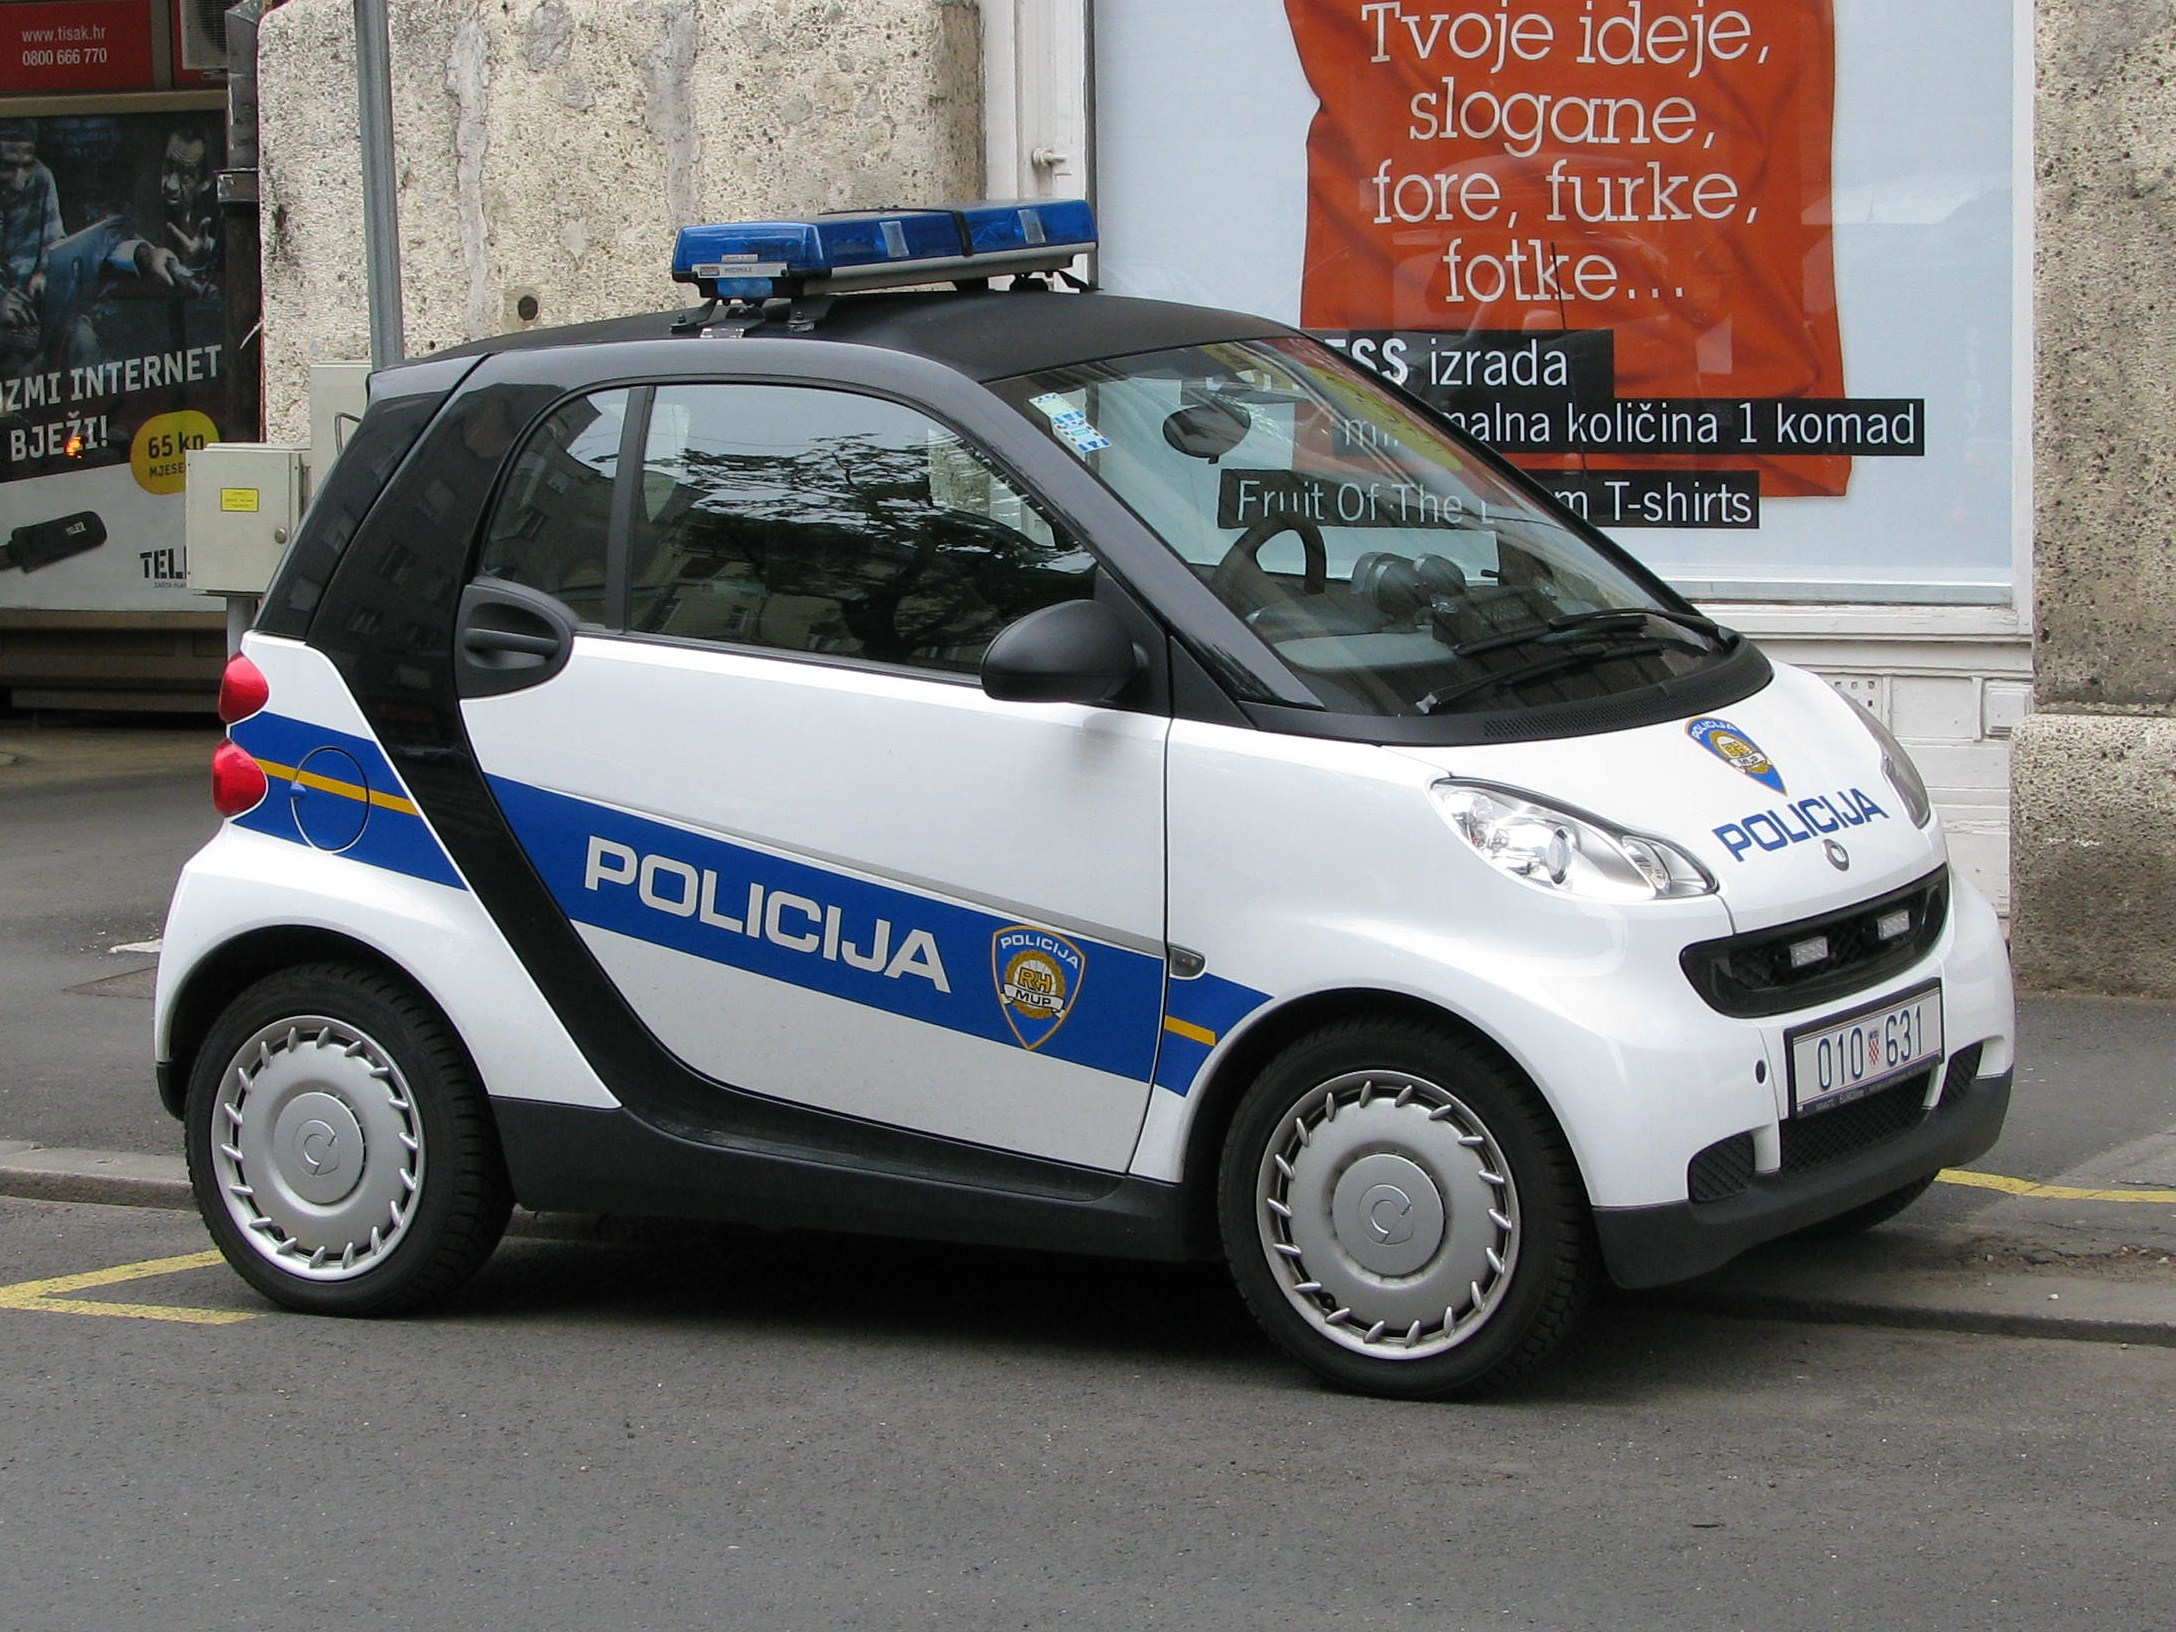 http://upload.wikimedia.org/wikipedia/commons/a/aa/Croatian_police_Smart_2.JPG